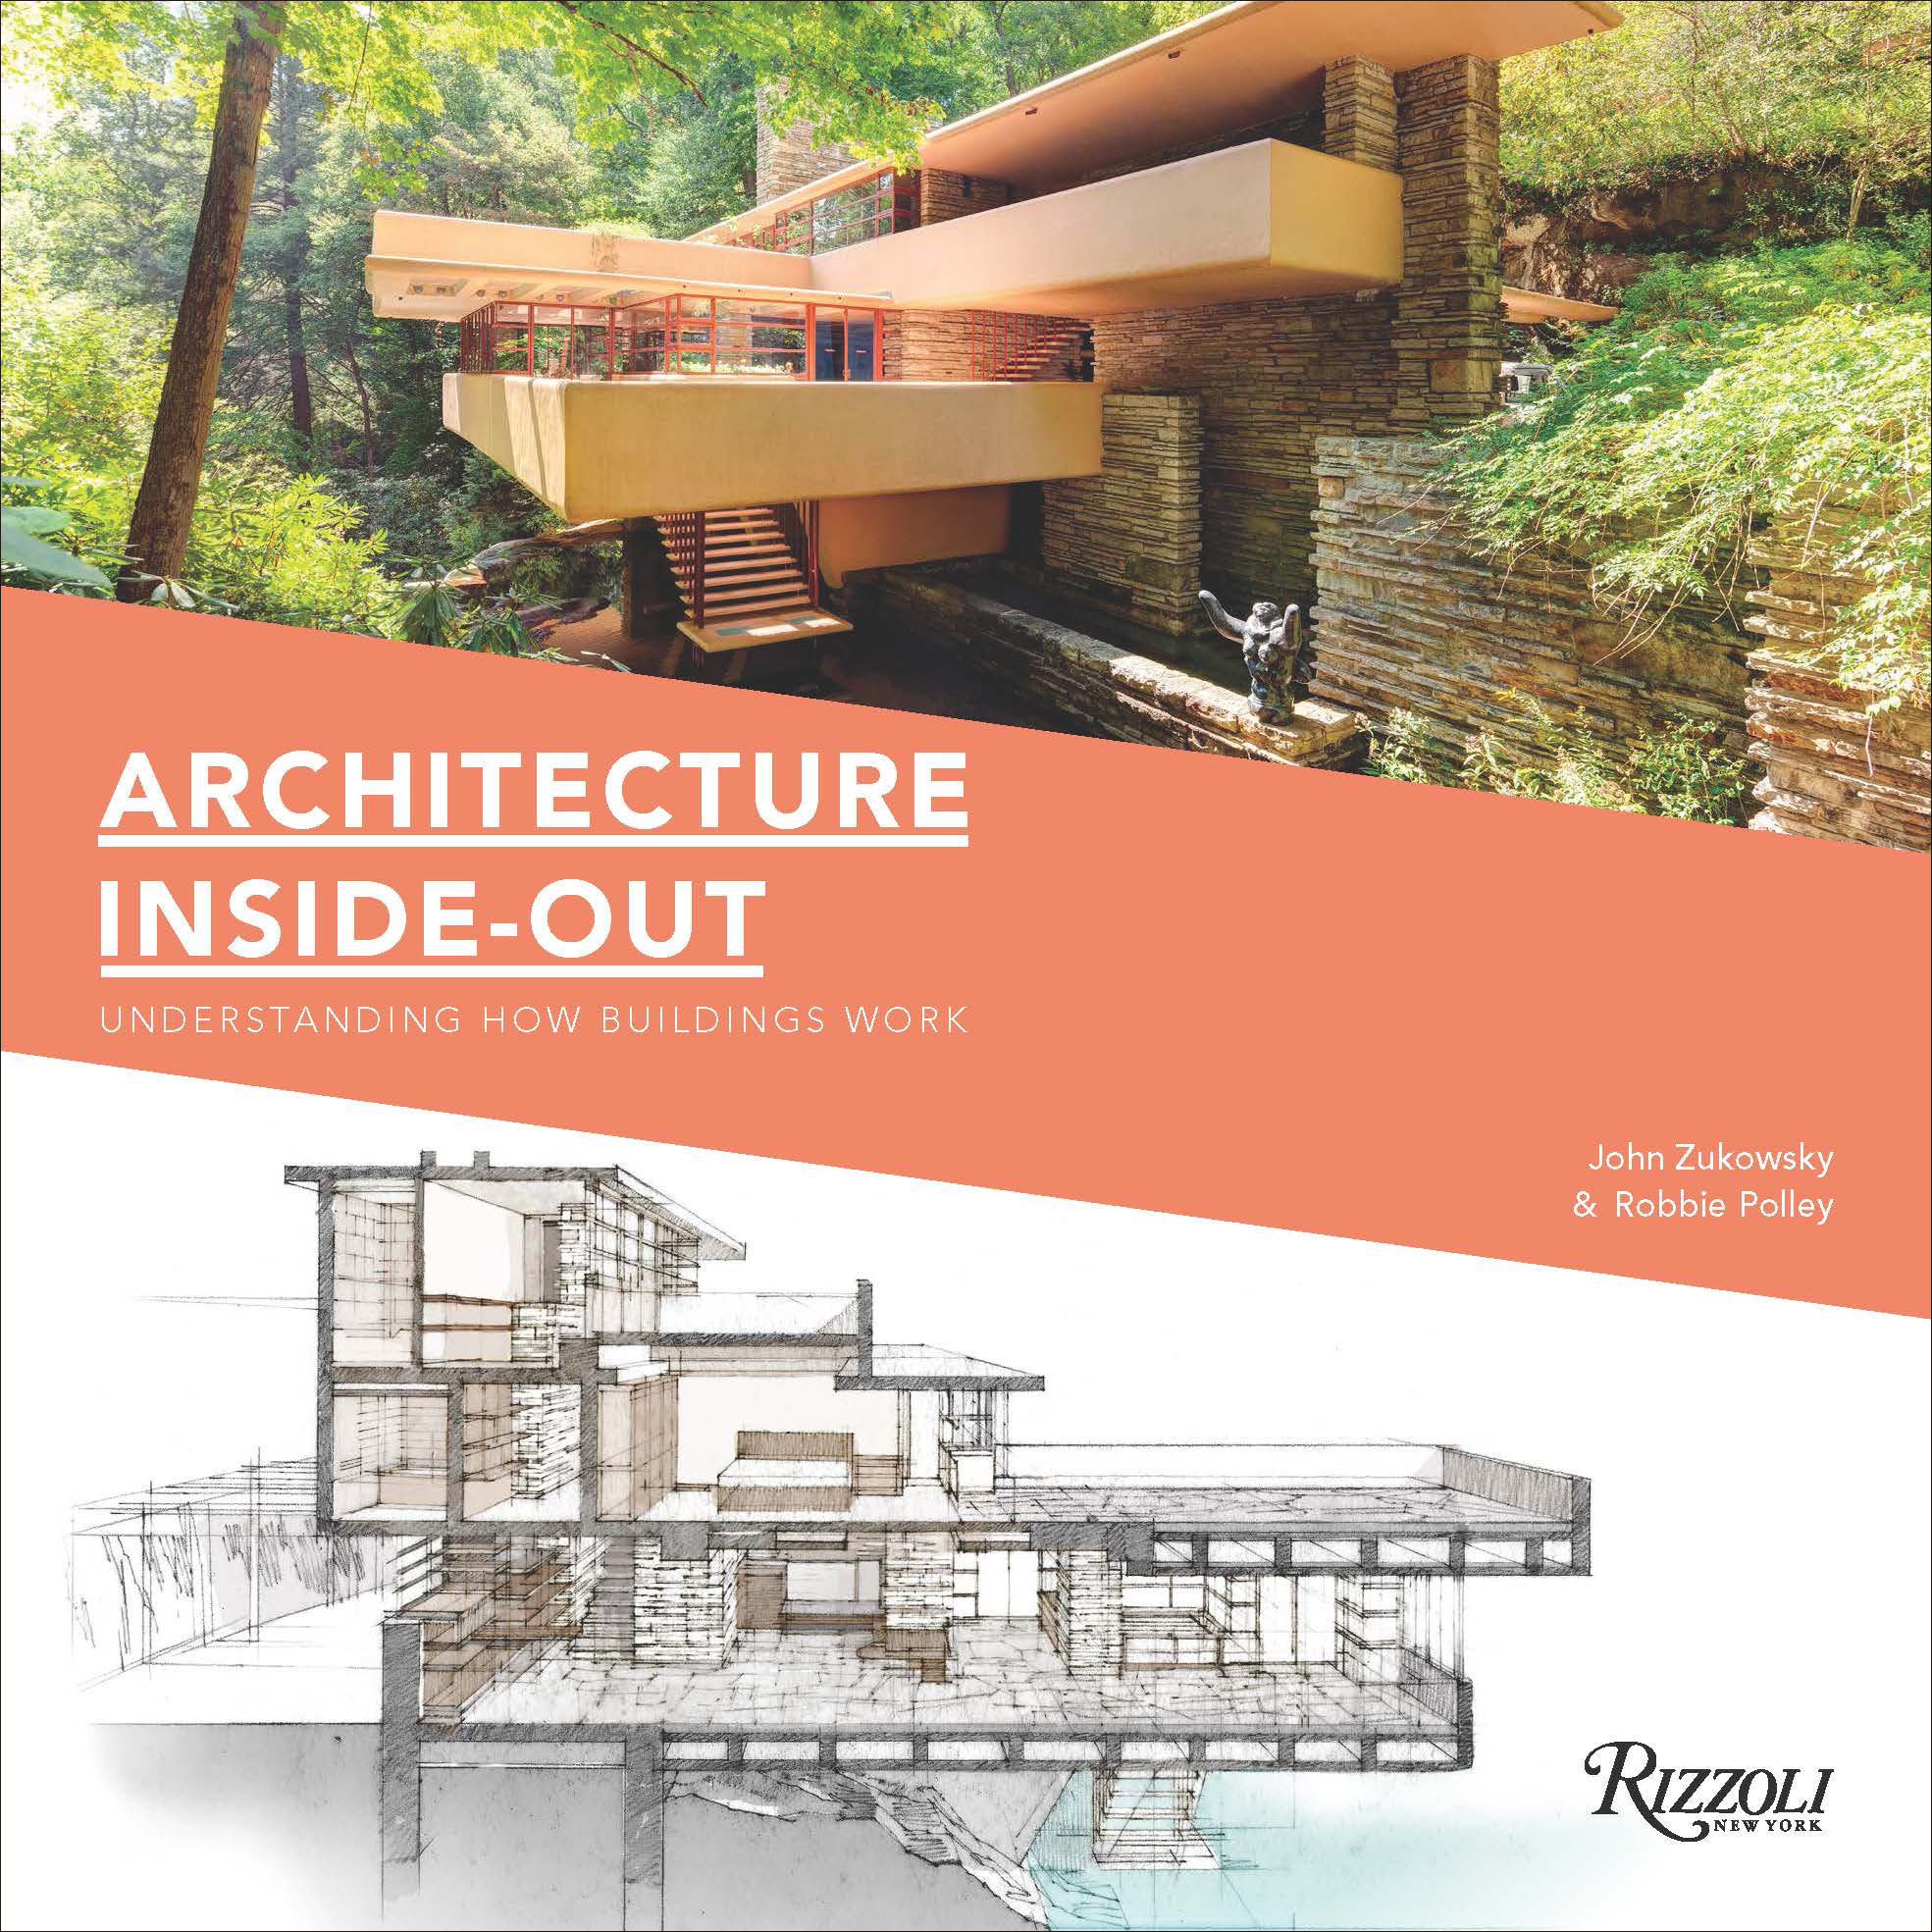 Architecture Inside-Out, John Zukowsky and Robbie Polley, Rizzoli